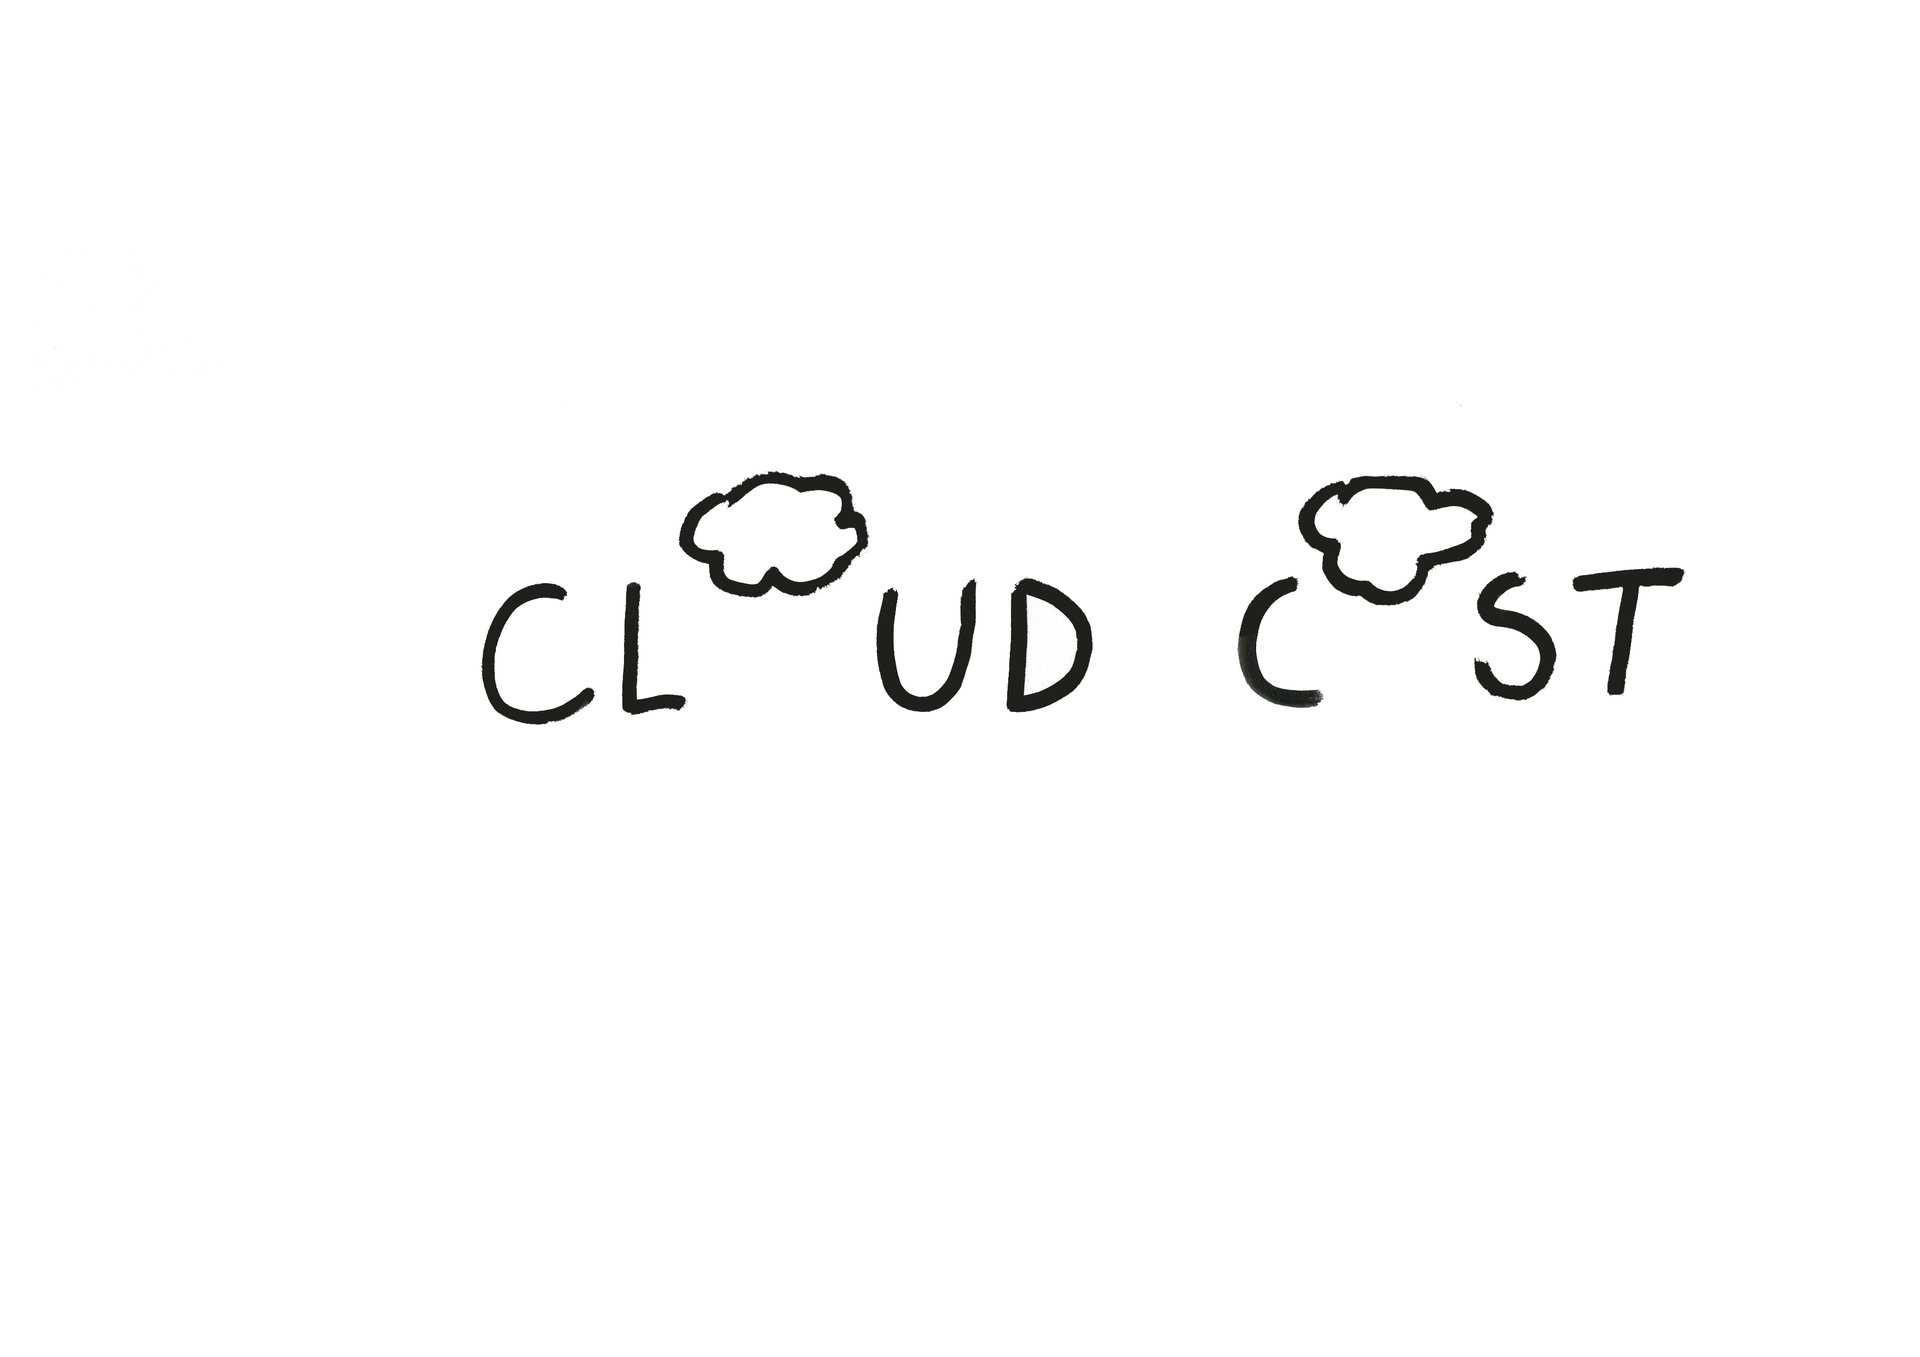 Dan Perjovschi, Come Cloud With Me (06/20), 2012